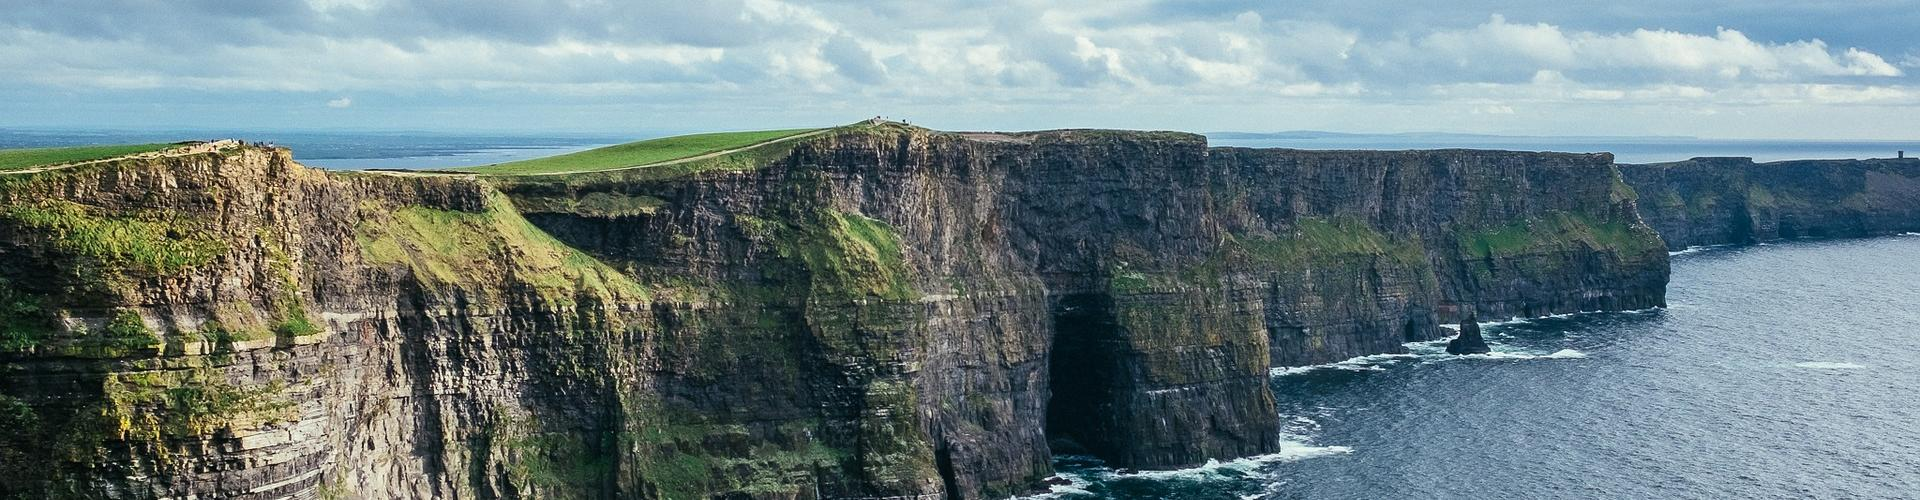 cliff of moher 2371819 1922